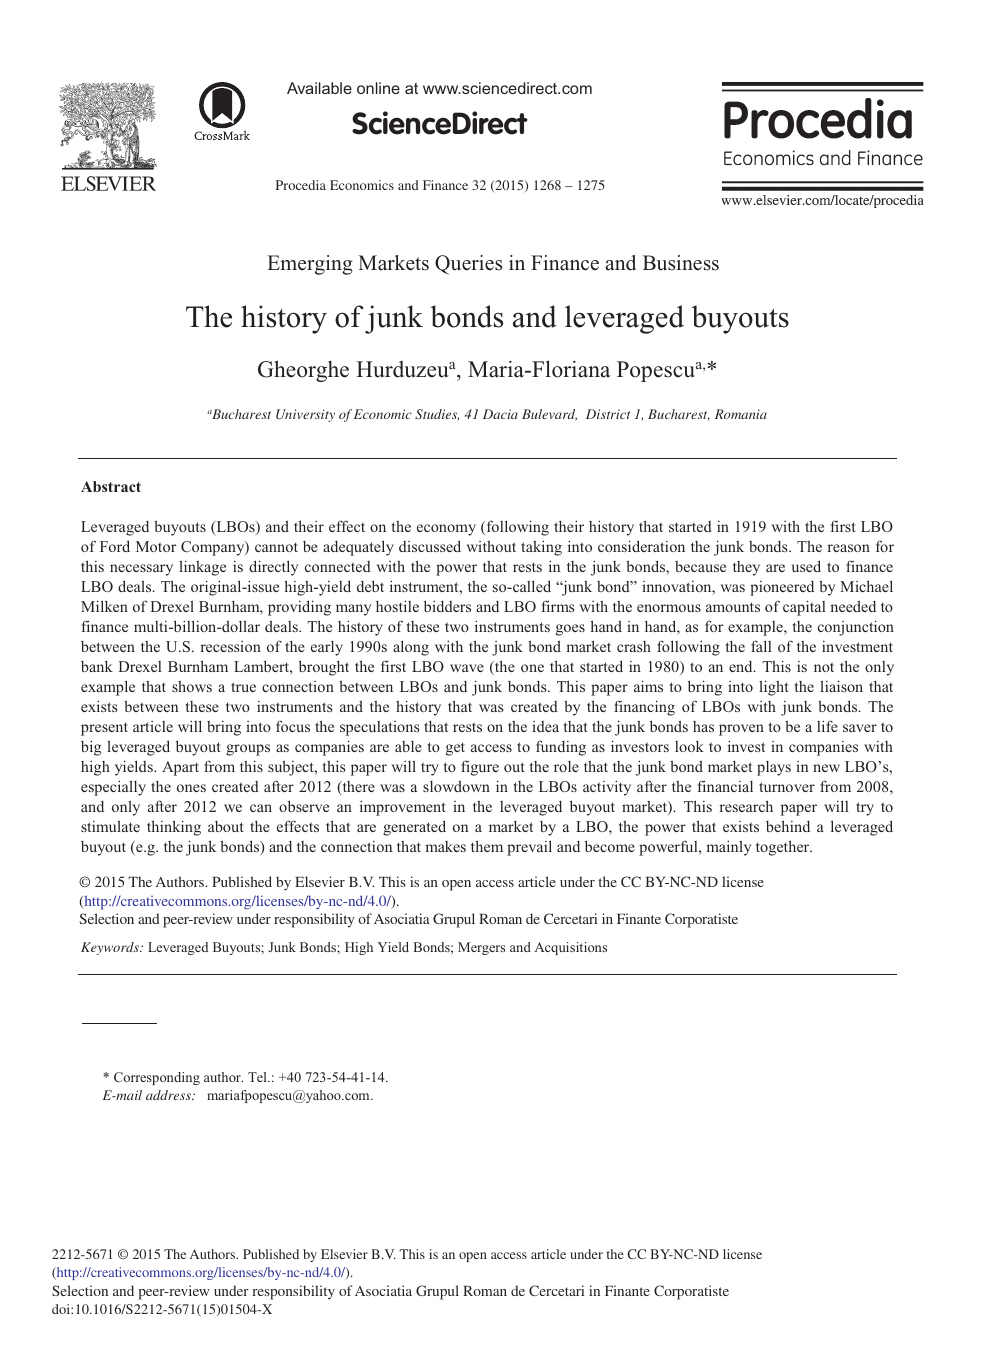 The History of Junk Bonds and Leveraged Buyouts – topic of research